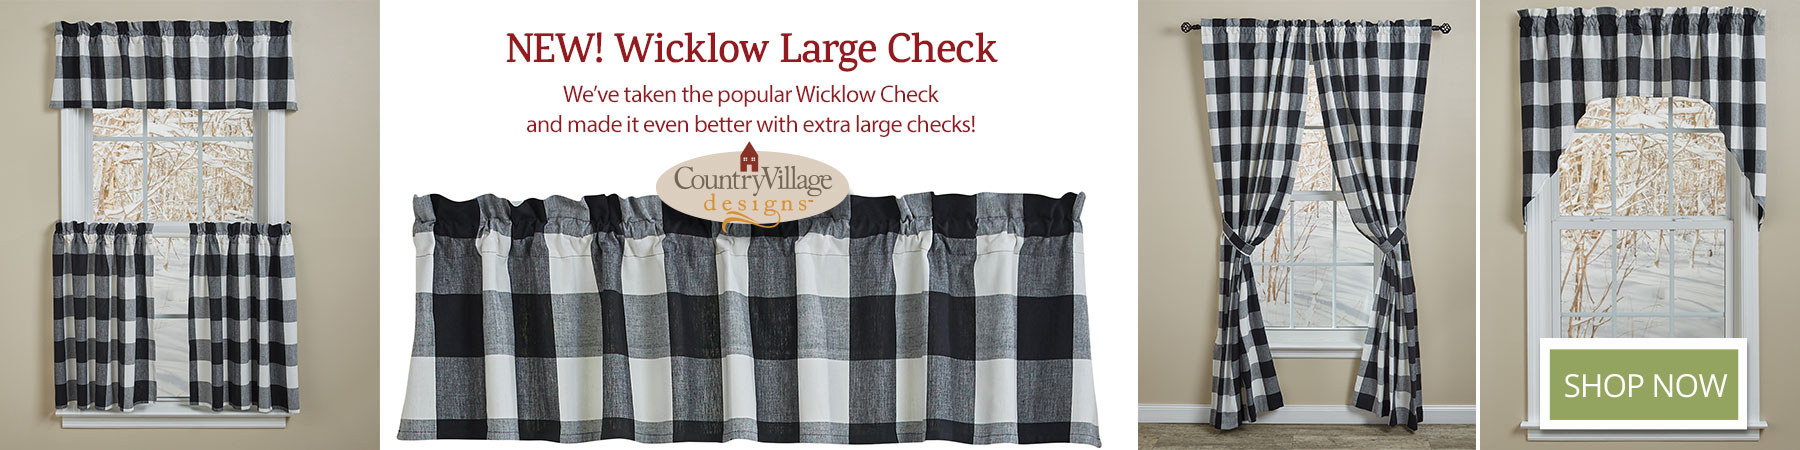 Wicklow Large Check curtains only available at Country Village Shoppe